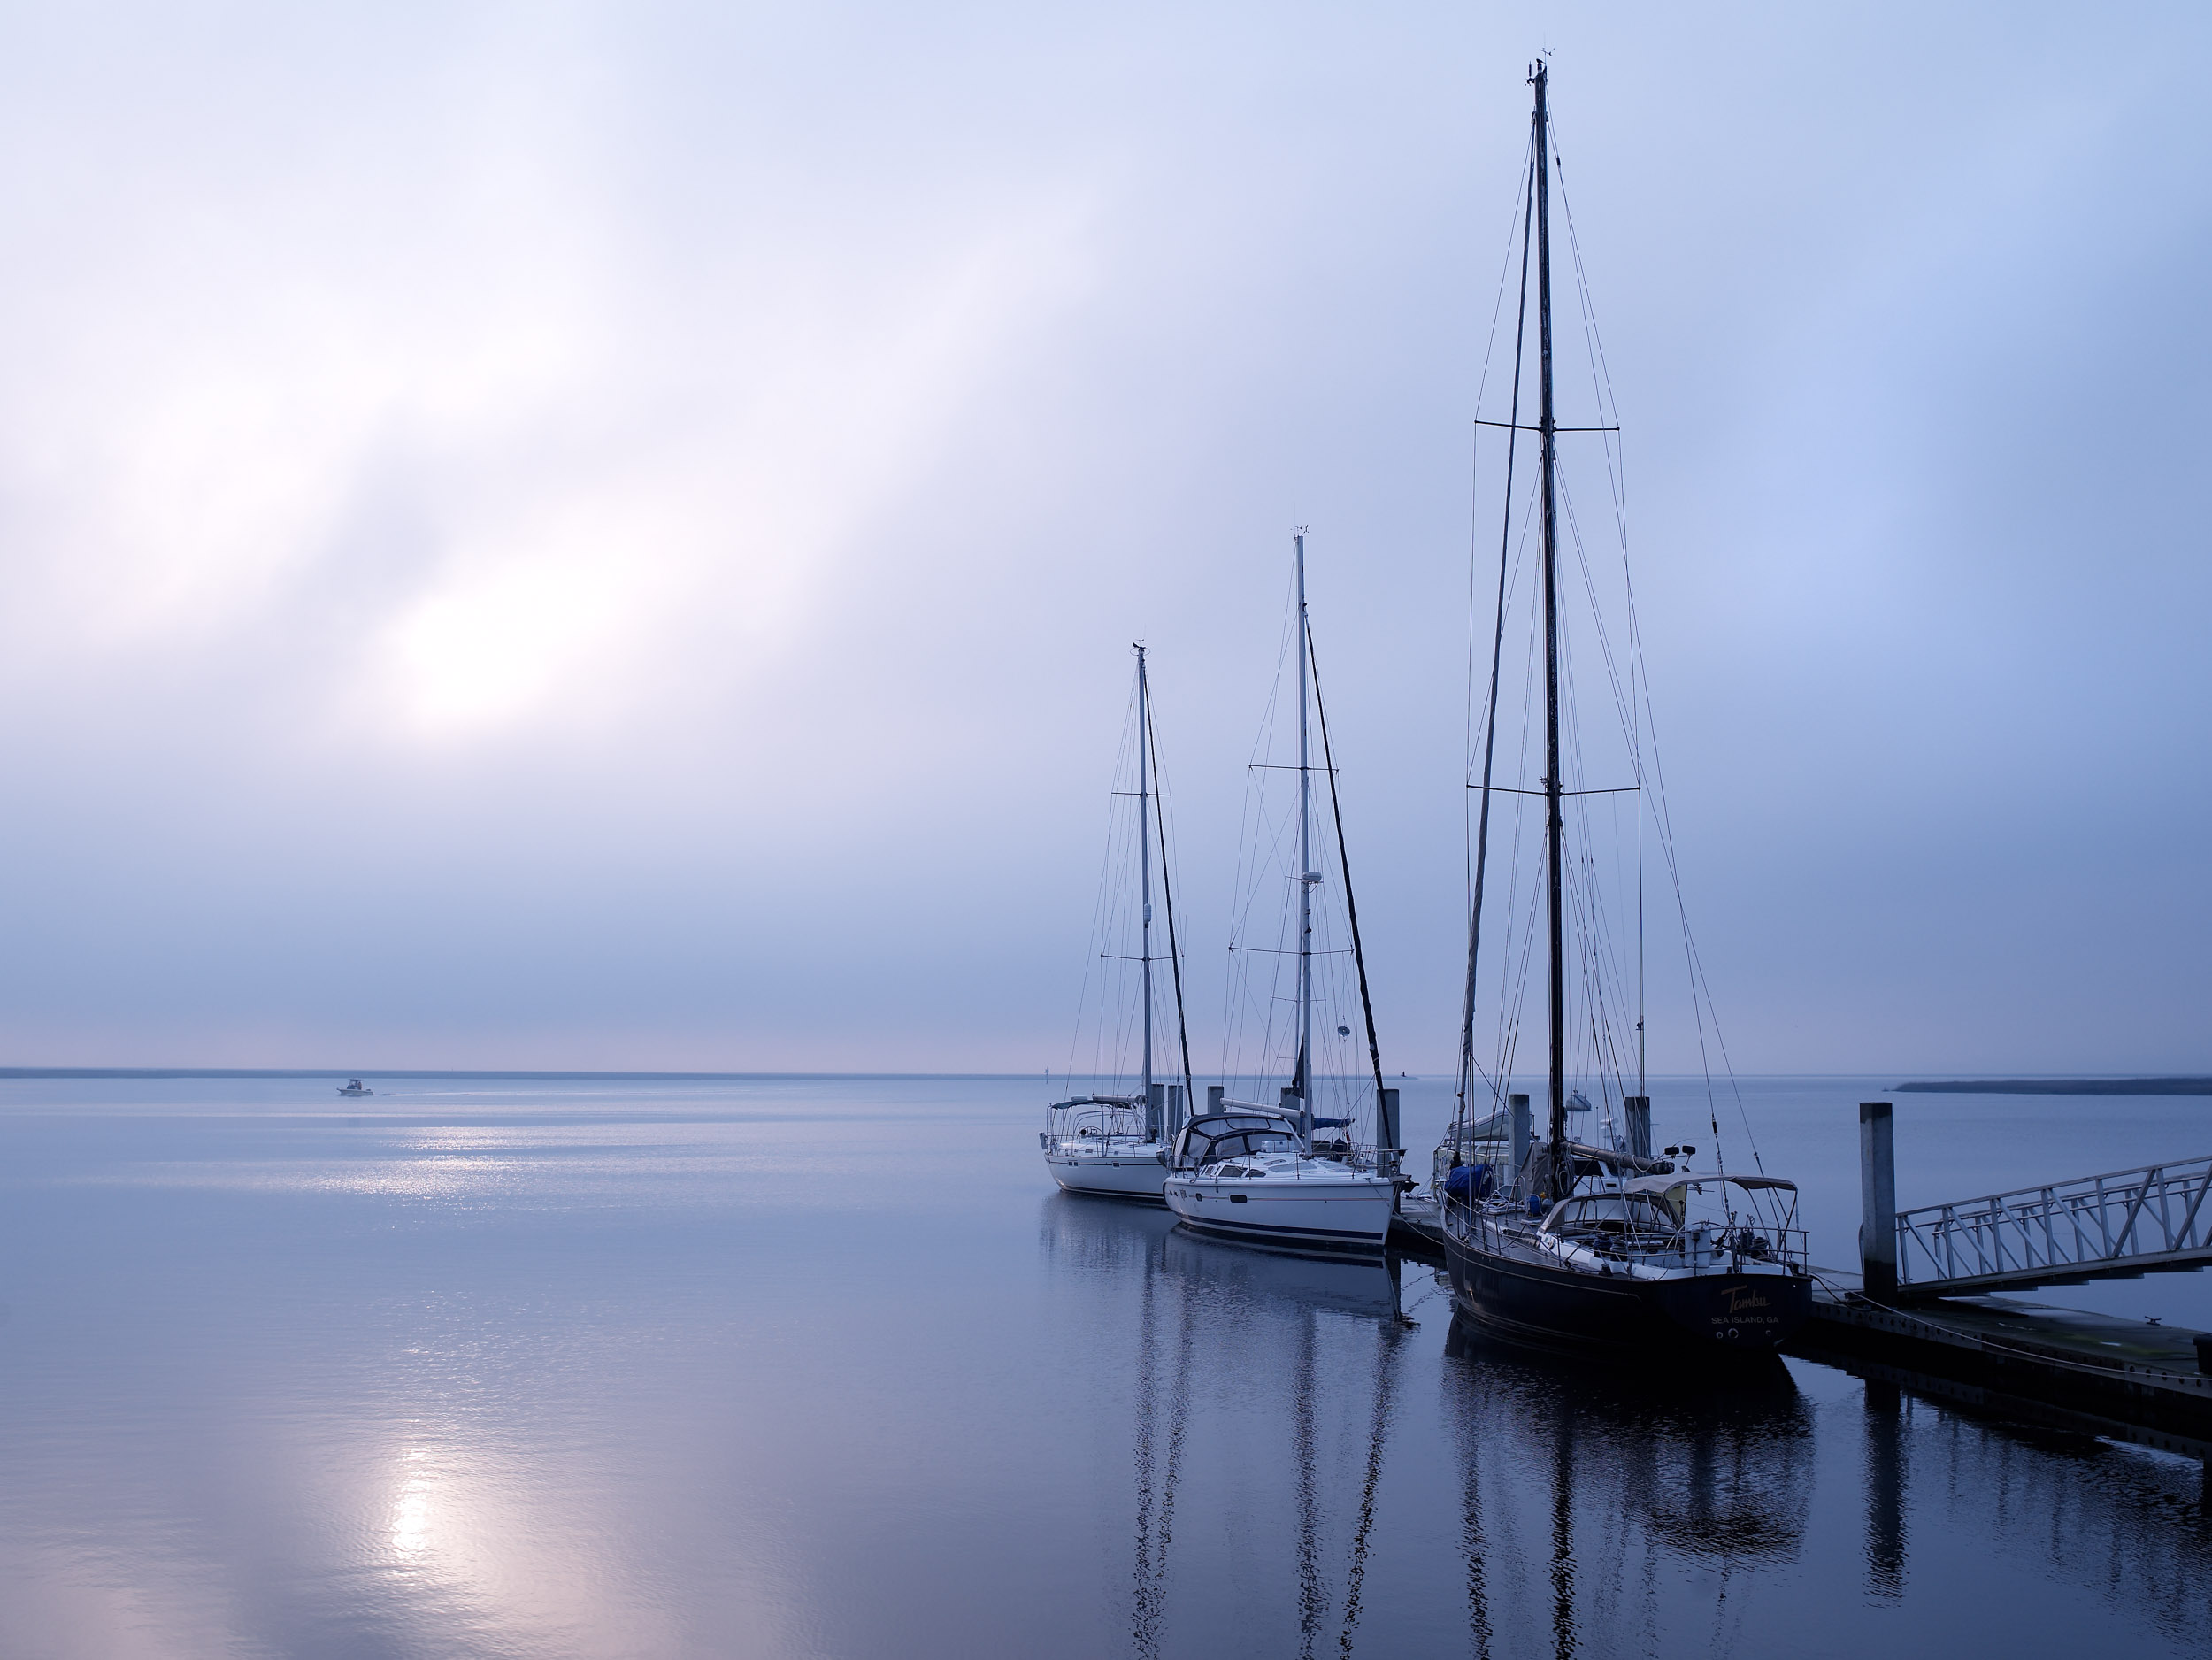 Sailboats in fog at sunrise, Steven Martine, travel and tourism photographer